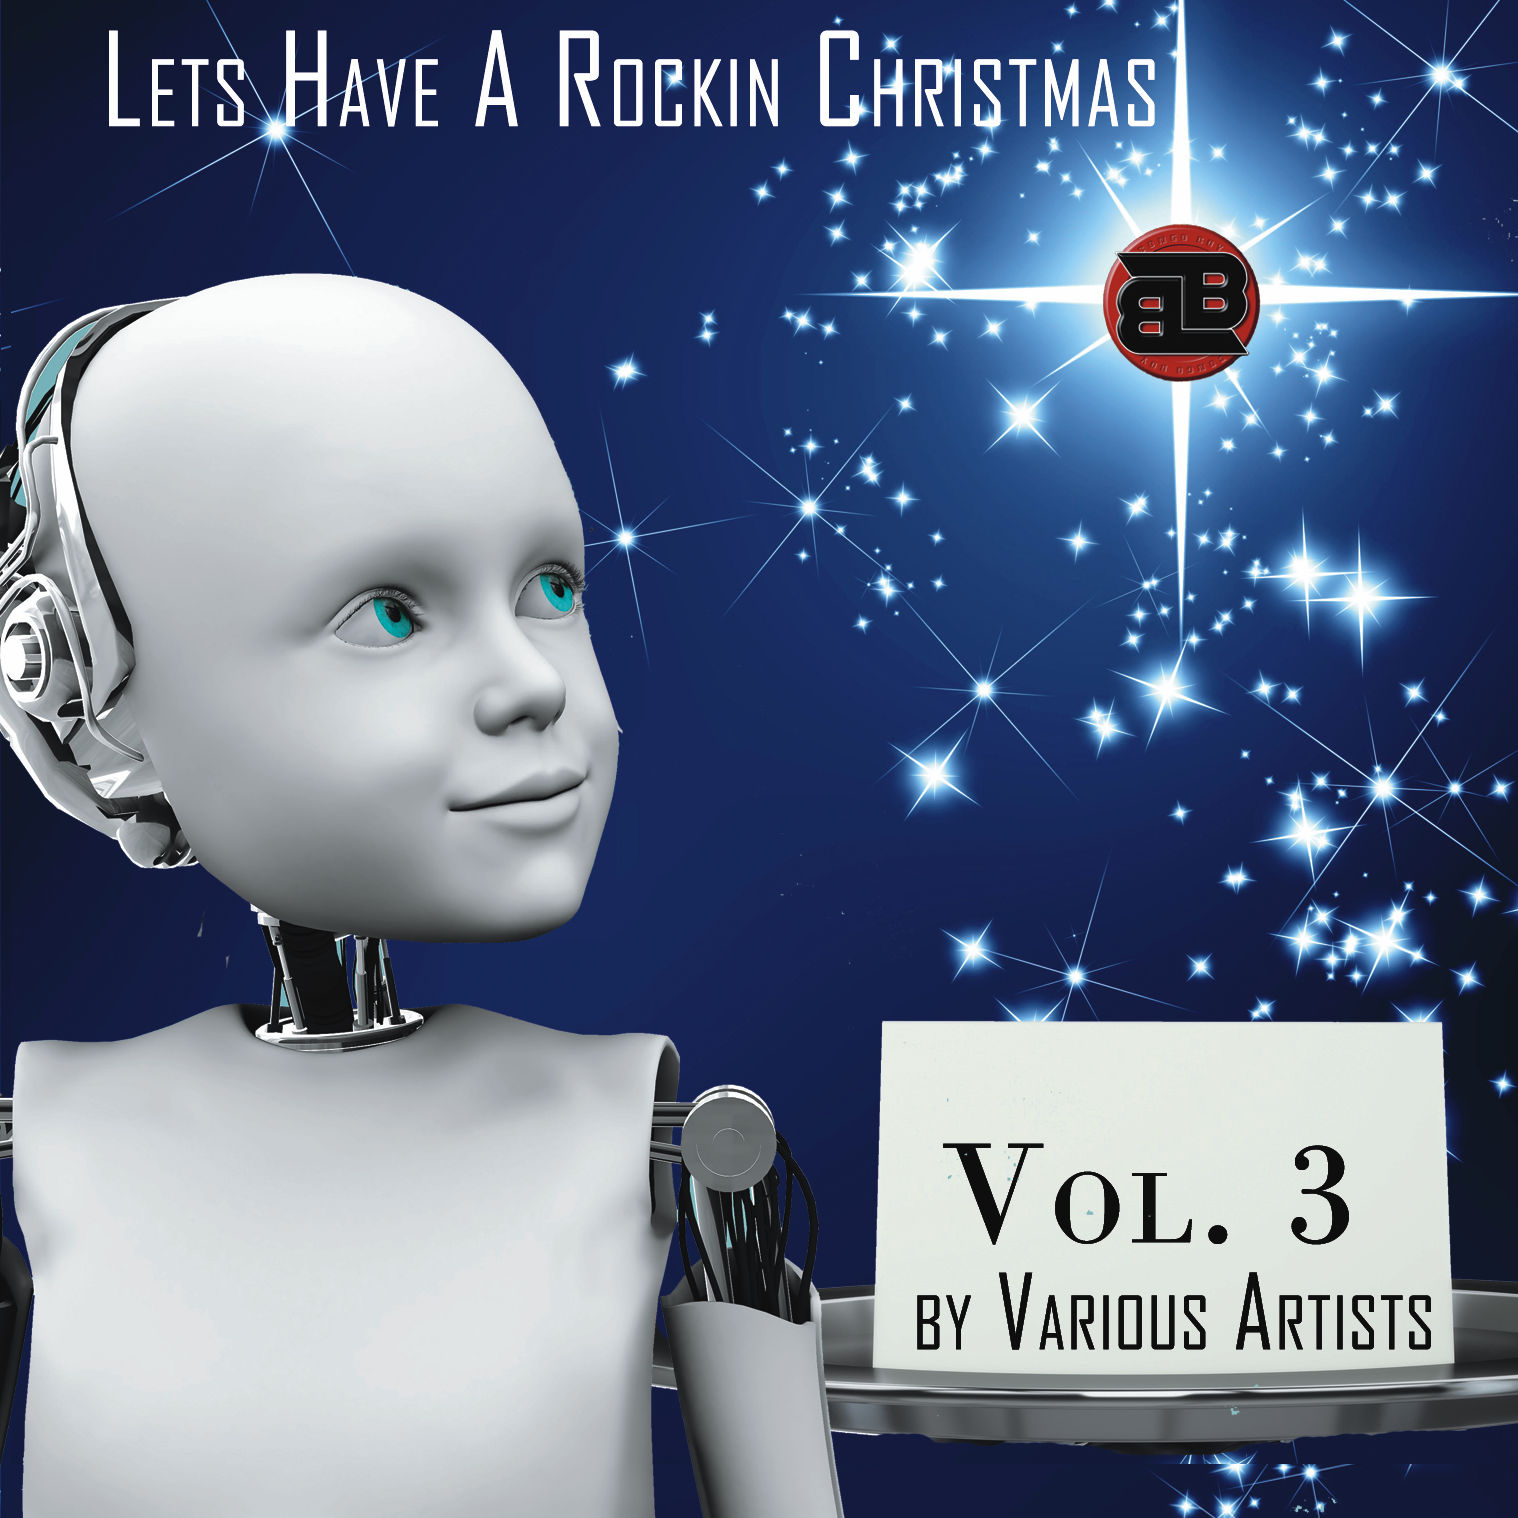 Lets Have A Rockin Christmas | The Holiday Album by Various Artists Vol 3